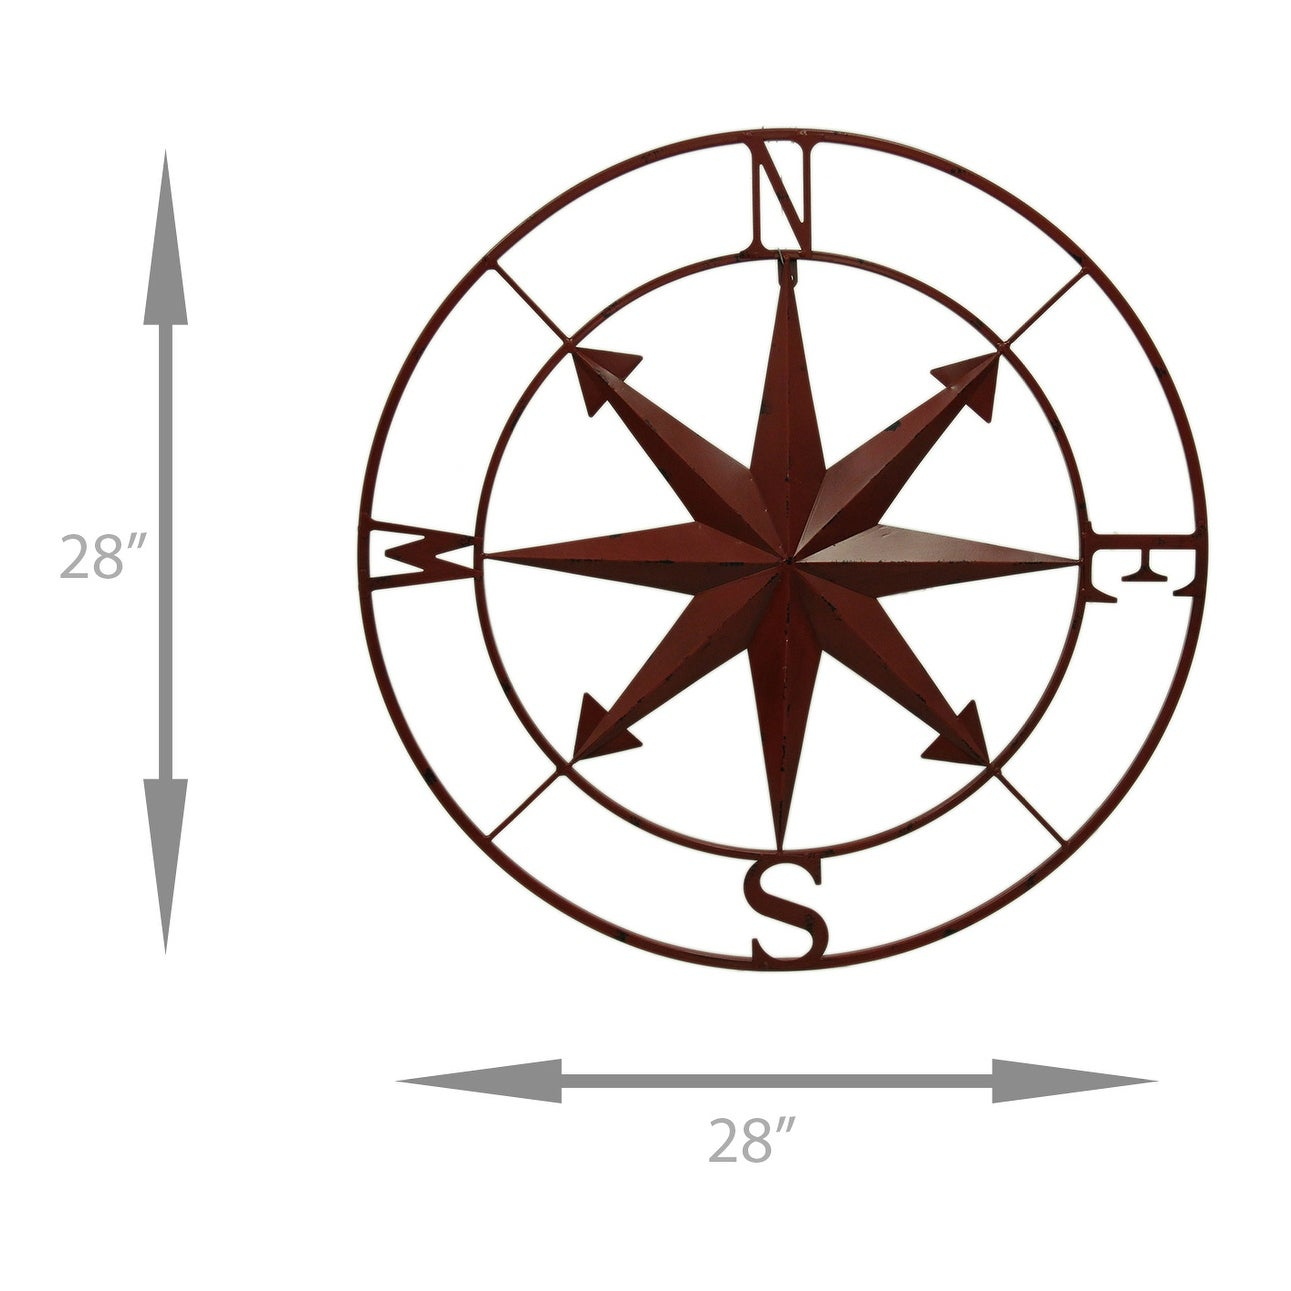 Distressed Metal Indoor/outdoor Compass Rose Wall Hanging 28 Inch   28 X 28  X 0.5 Inches Intended For Outdoor Metal Wall Compass (Photo 14 of 30)